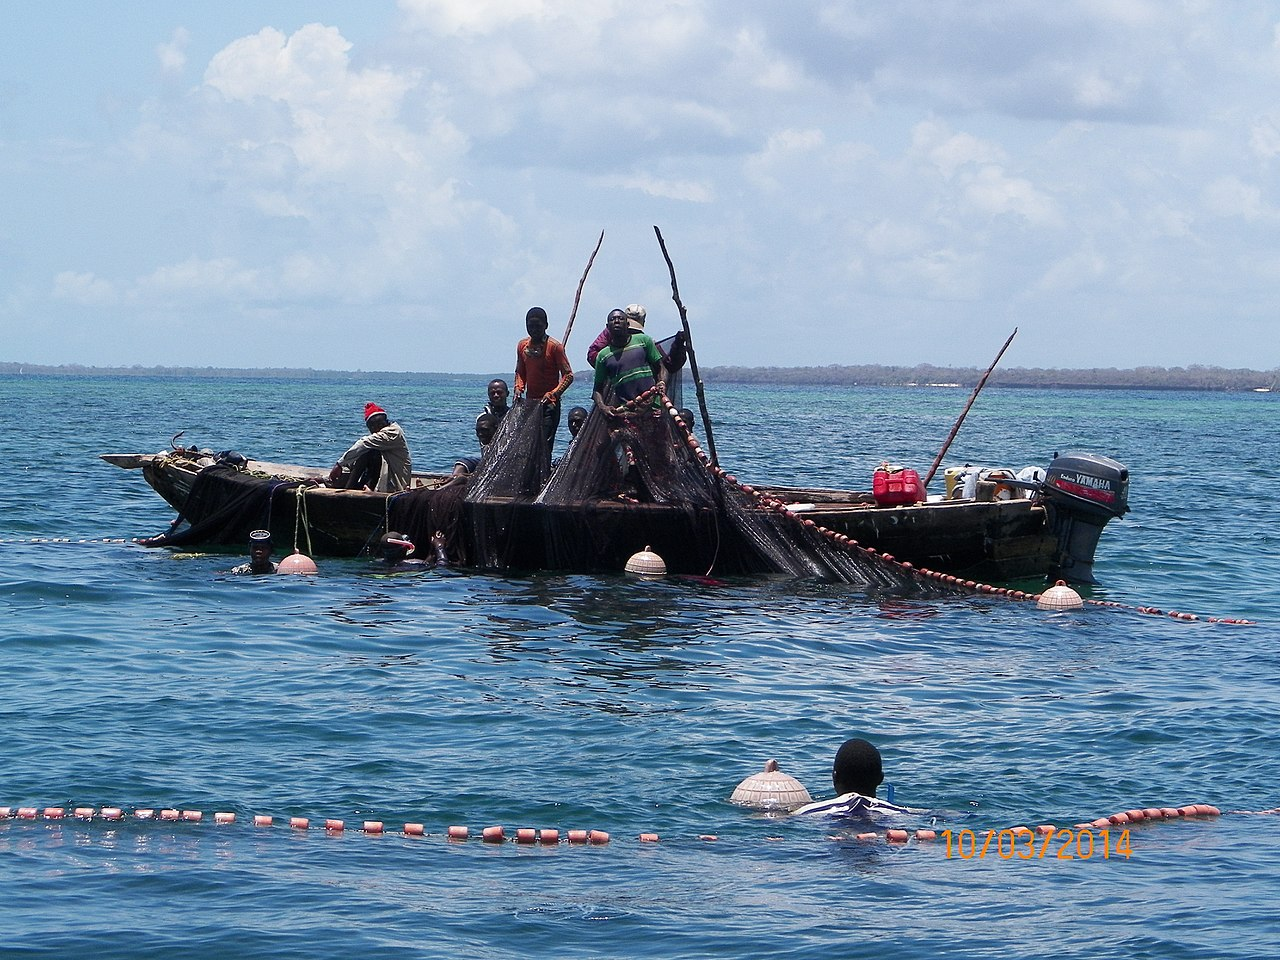 Fishermen using ring nets, which can damage the coral